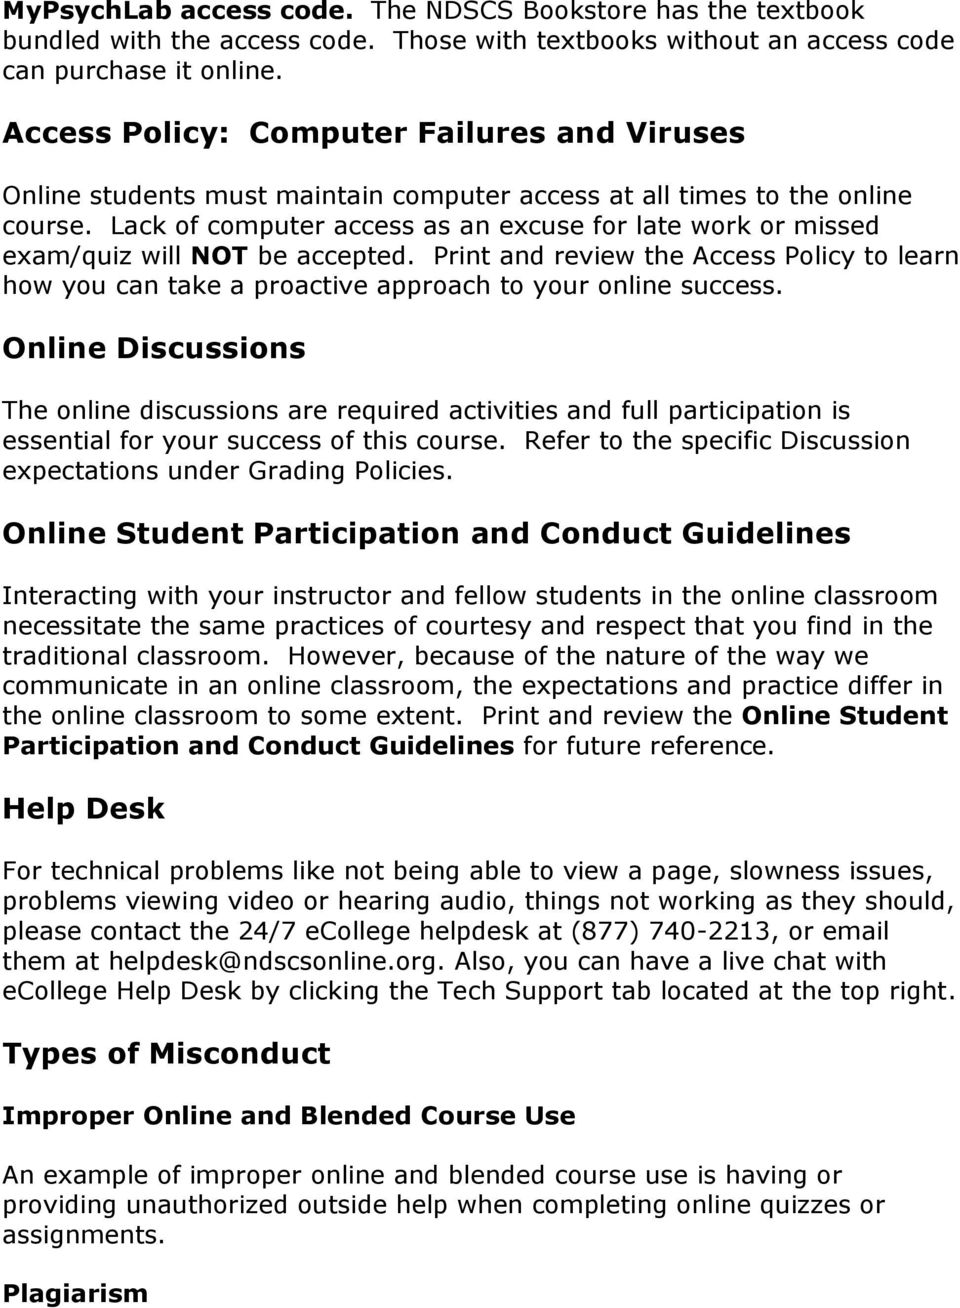 Lack of computer access as an excuse for late work or missed exam/quiz will NOT be accepted. Print and review the Access Policy to learn how you can take a proactive approach to your online success.